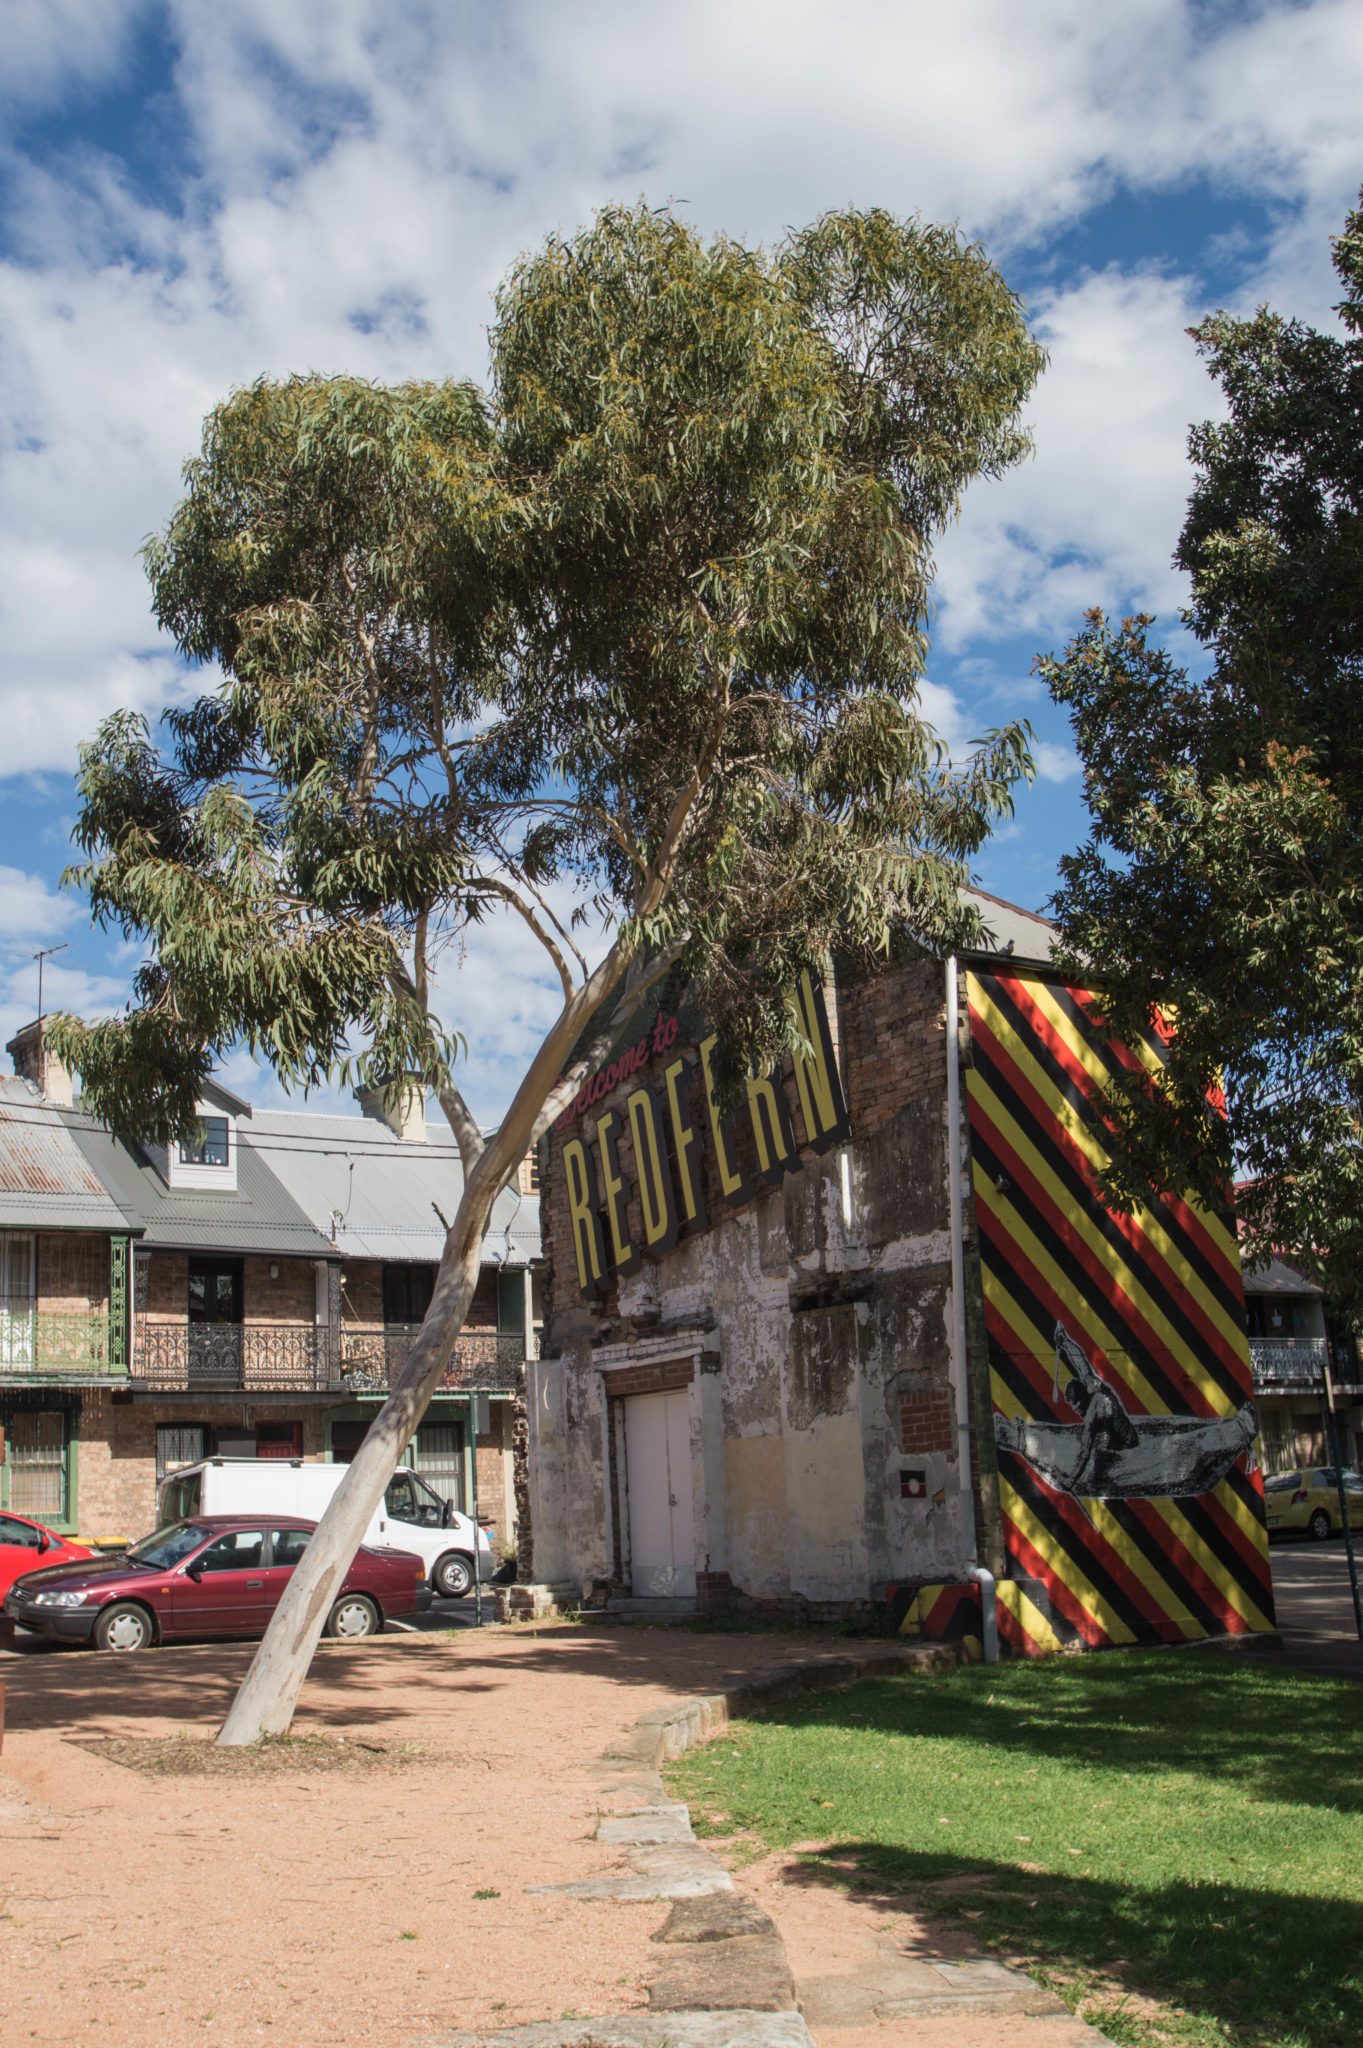 Redfern Sydney: The colourful painting expressed the changes, Redfern went through